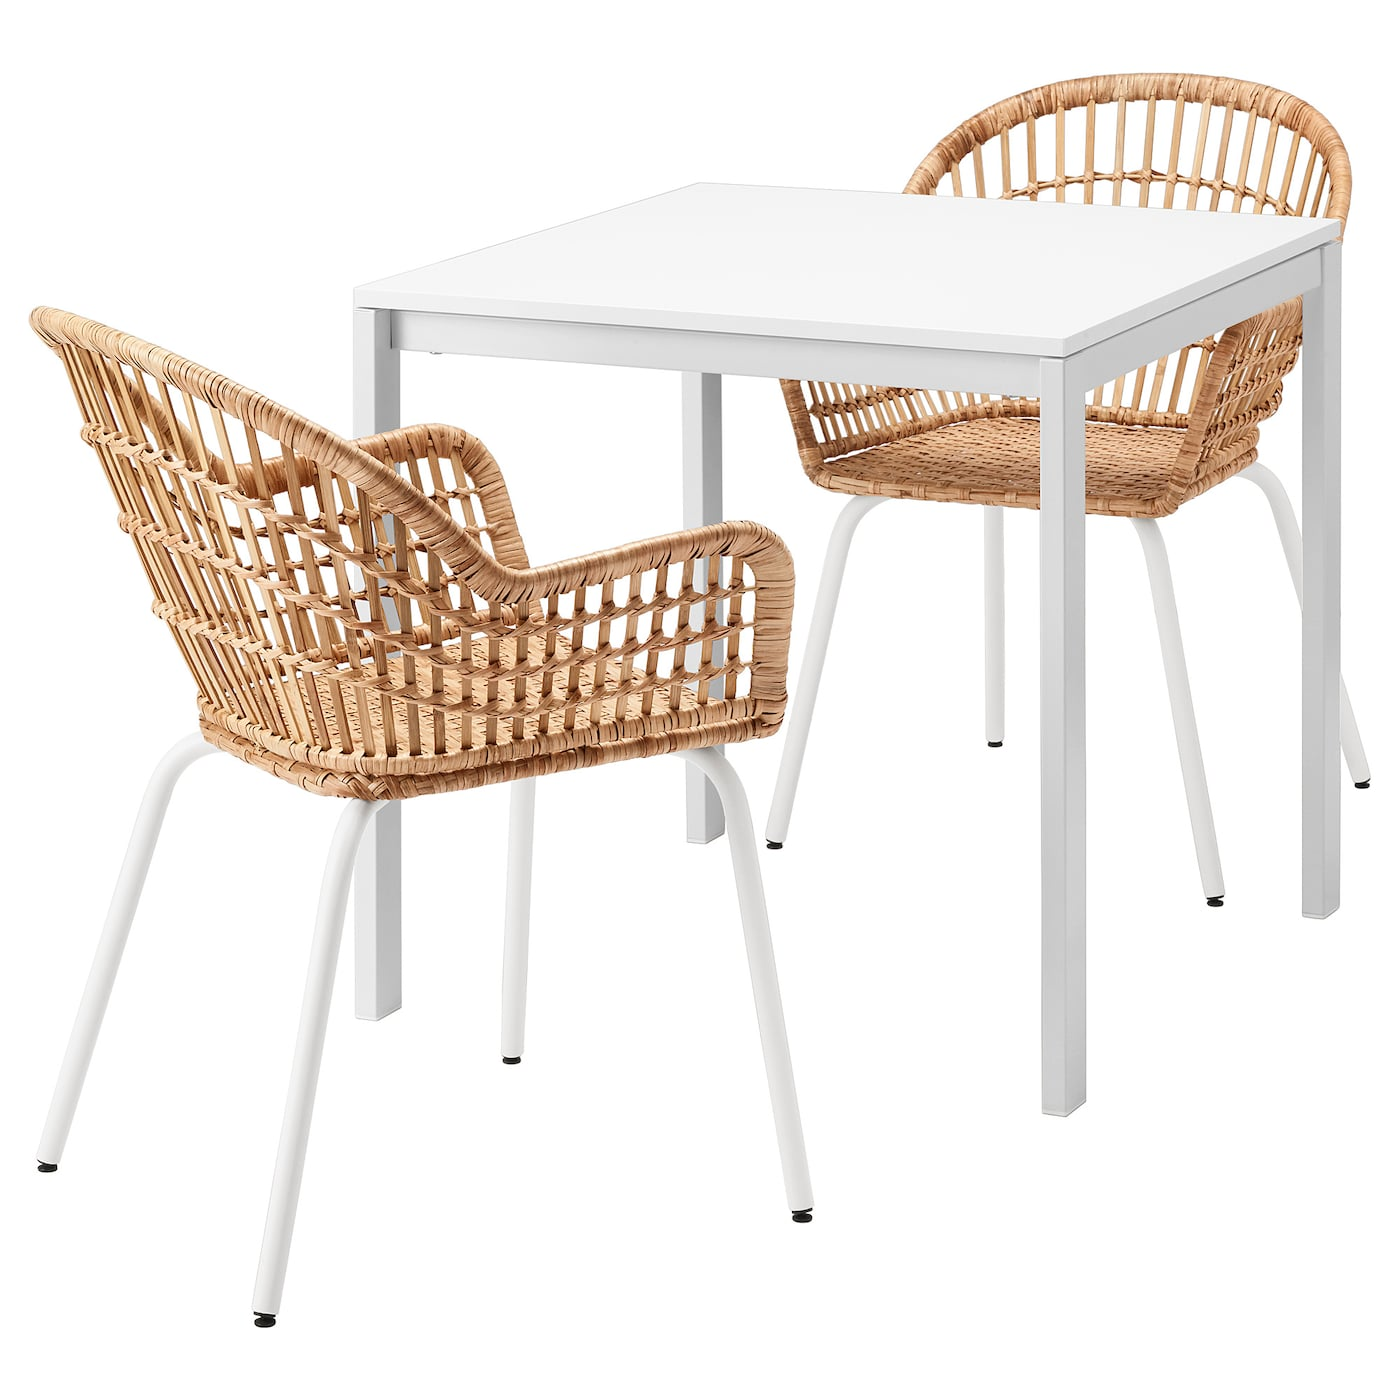 MELLTORP / NILSOVE Table and 7 chairs - white rattan/white 7x7 cm